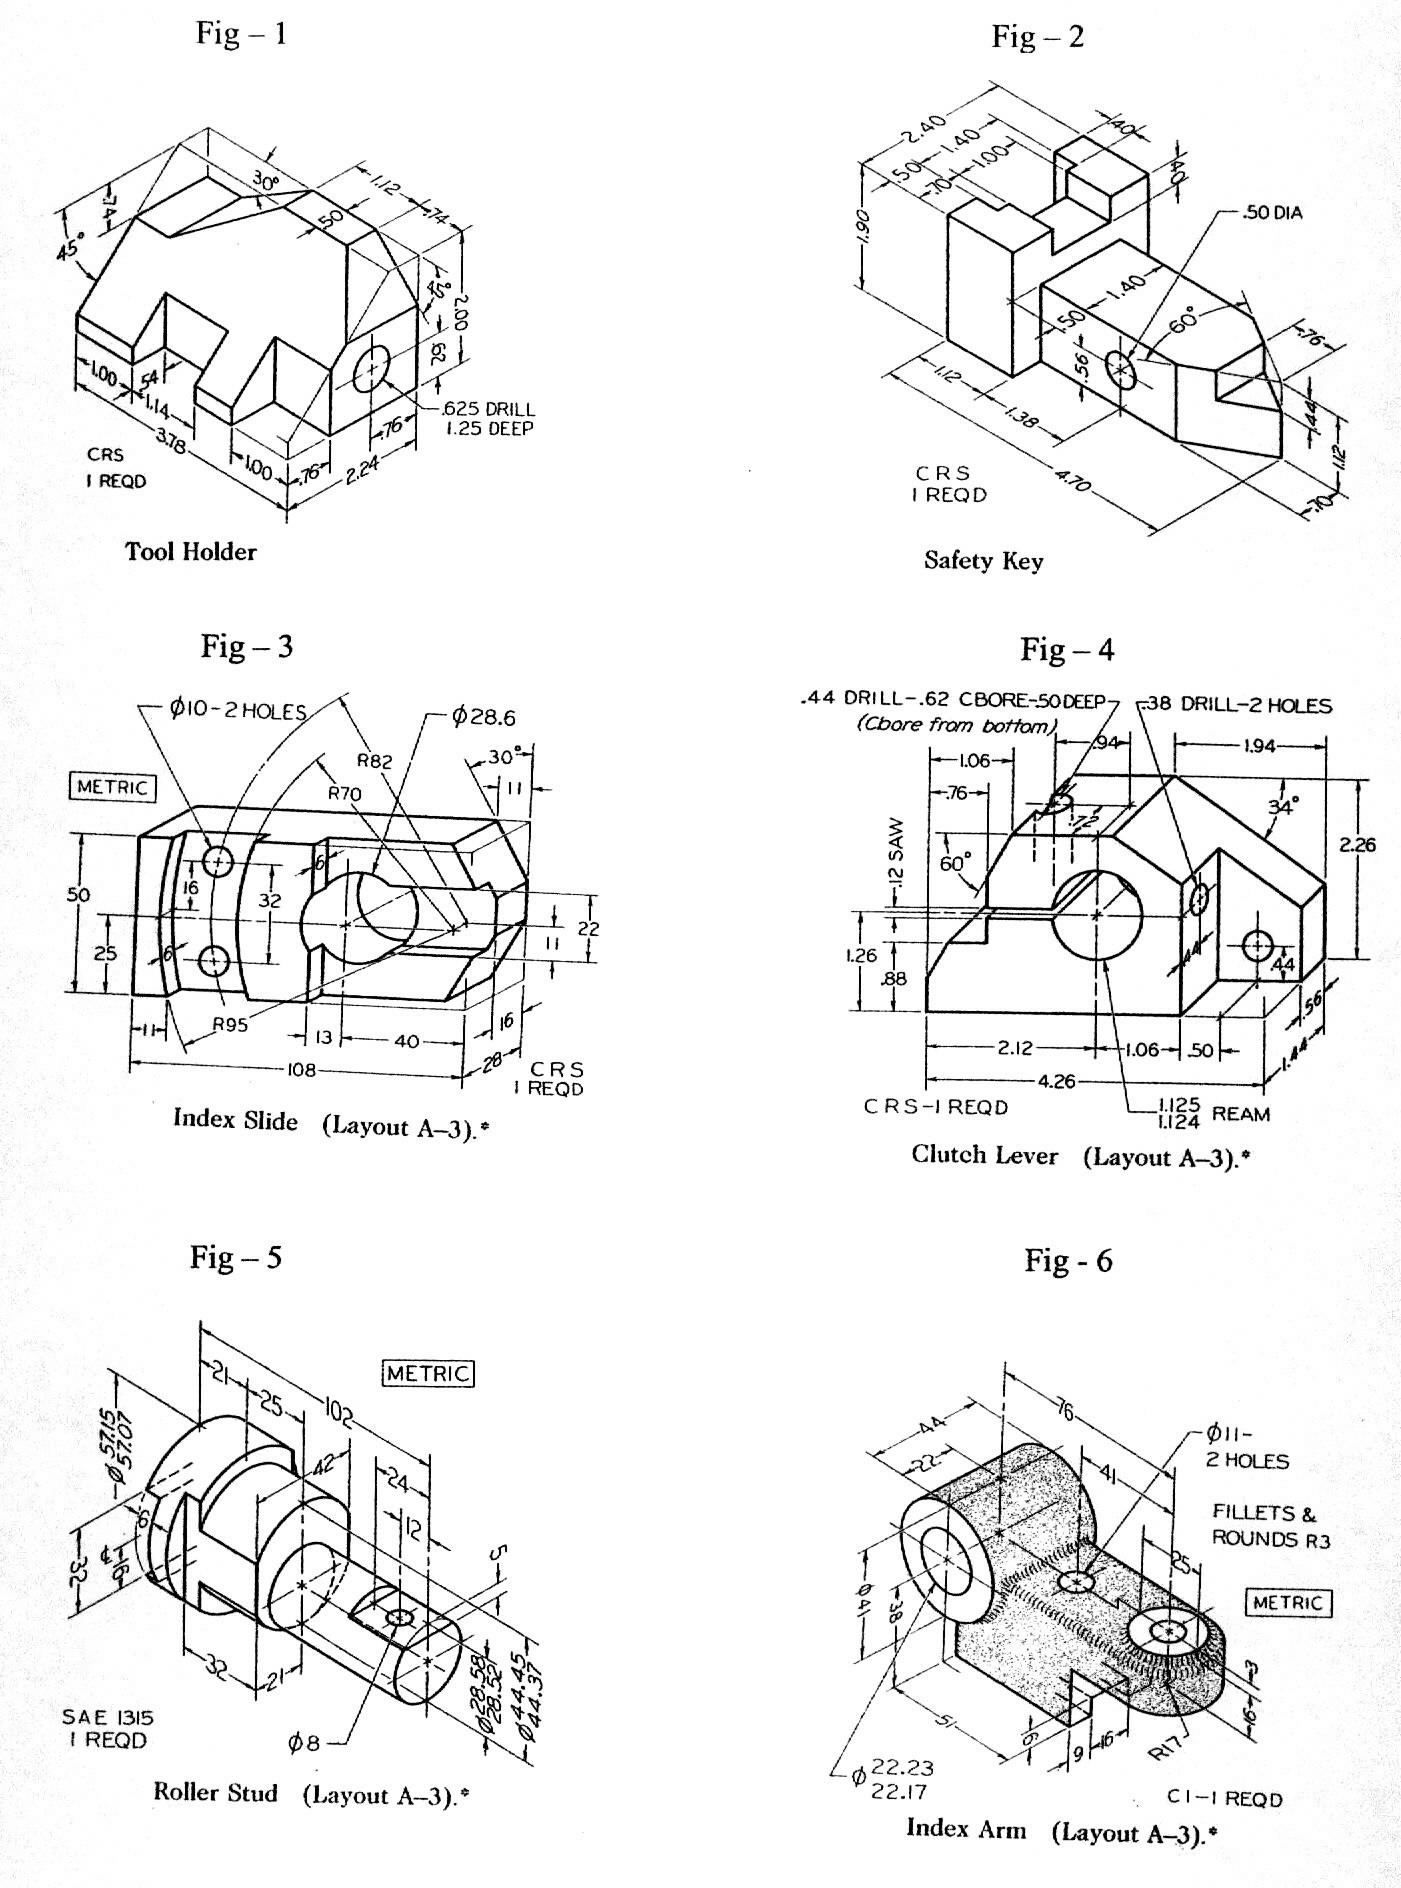 Pin by Martin Bolton on Isometric & Technical Drawing